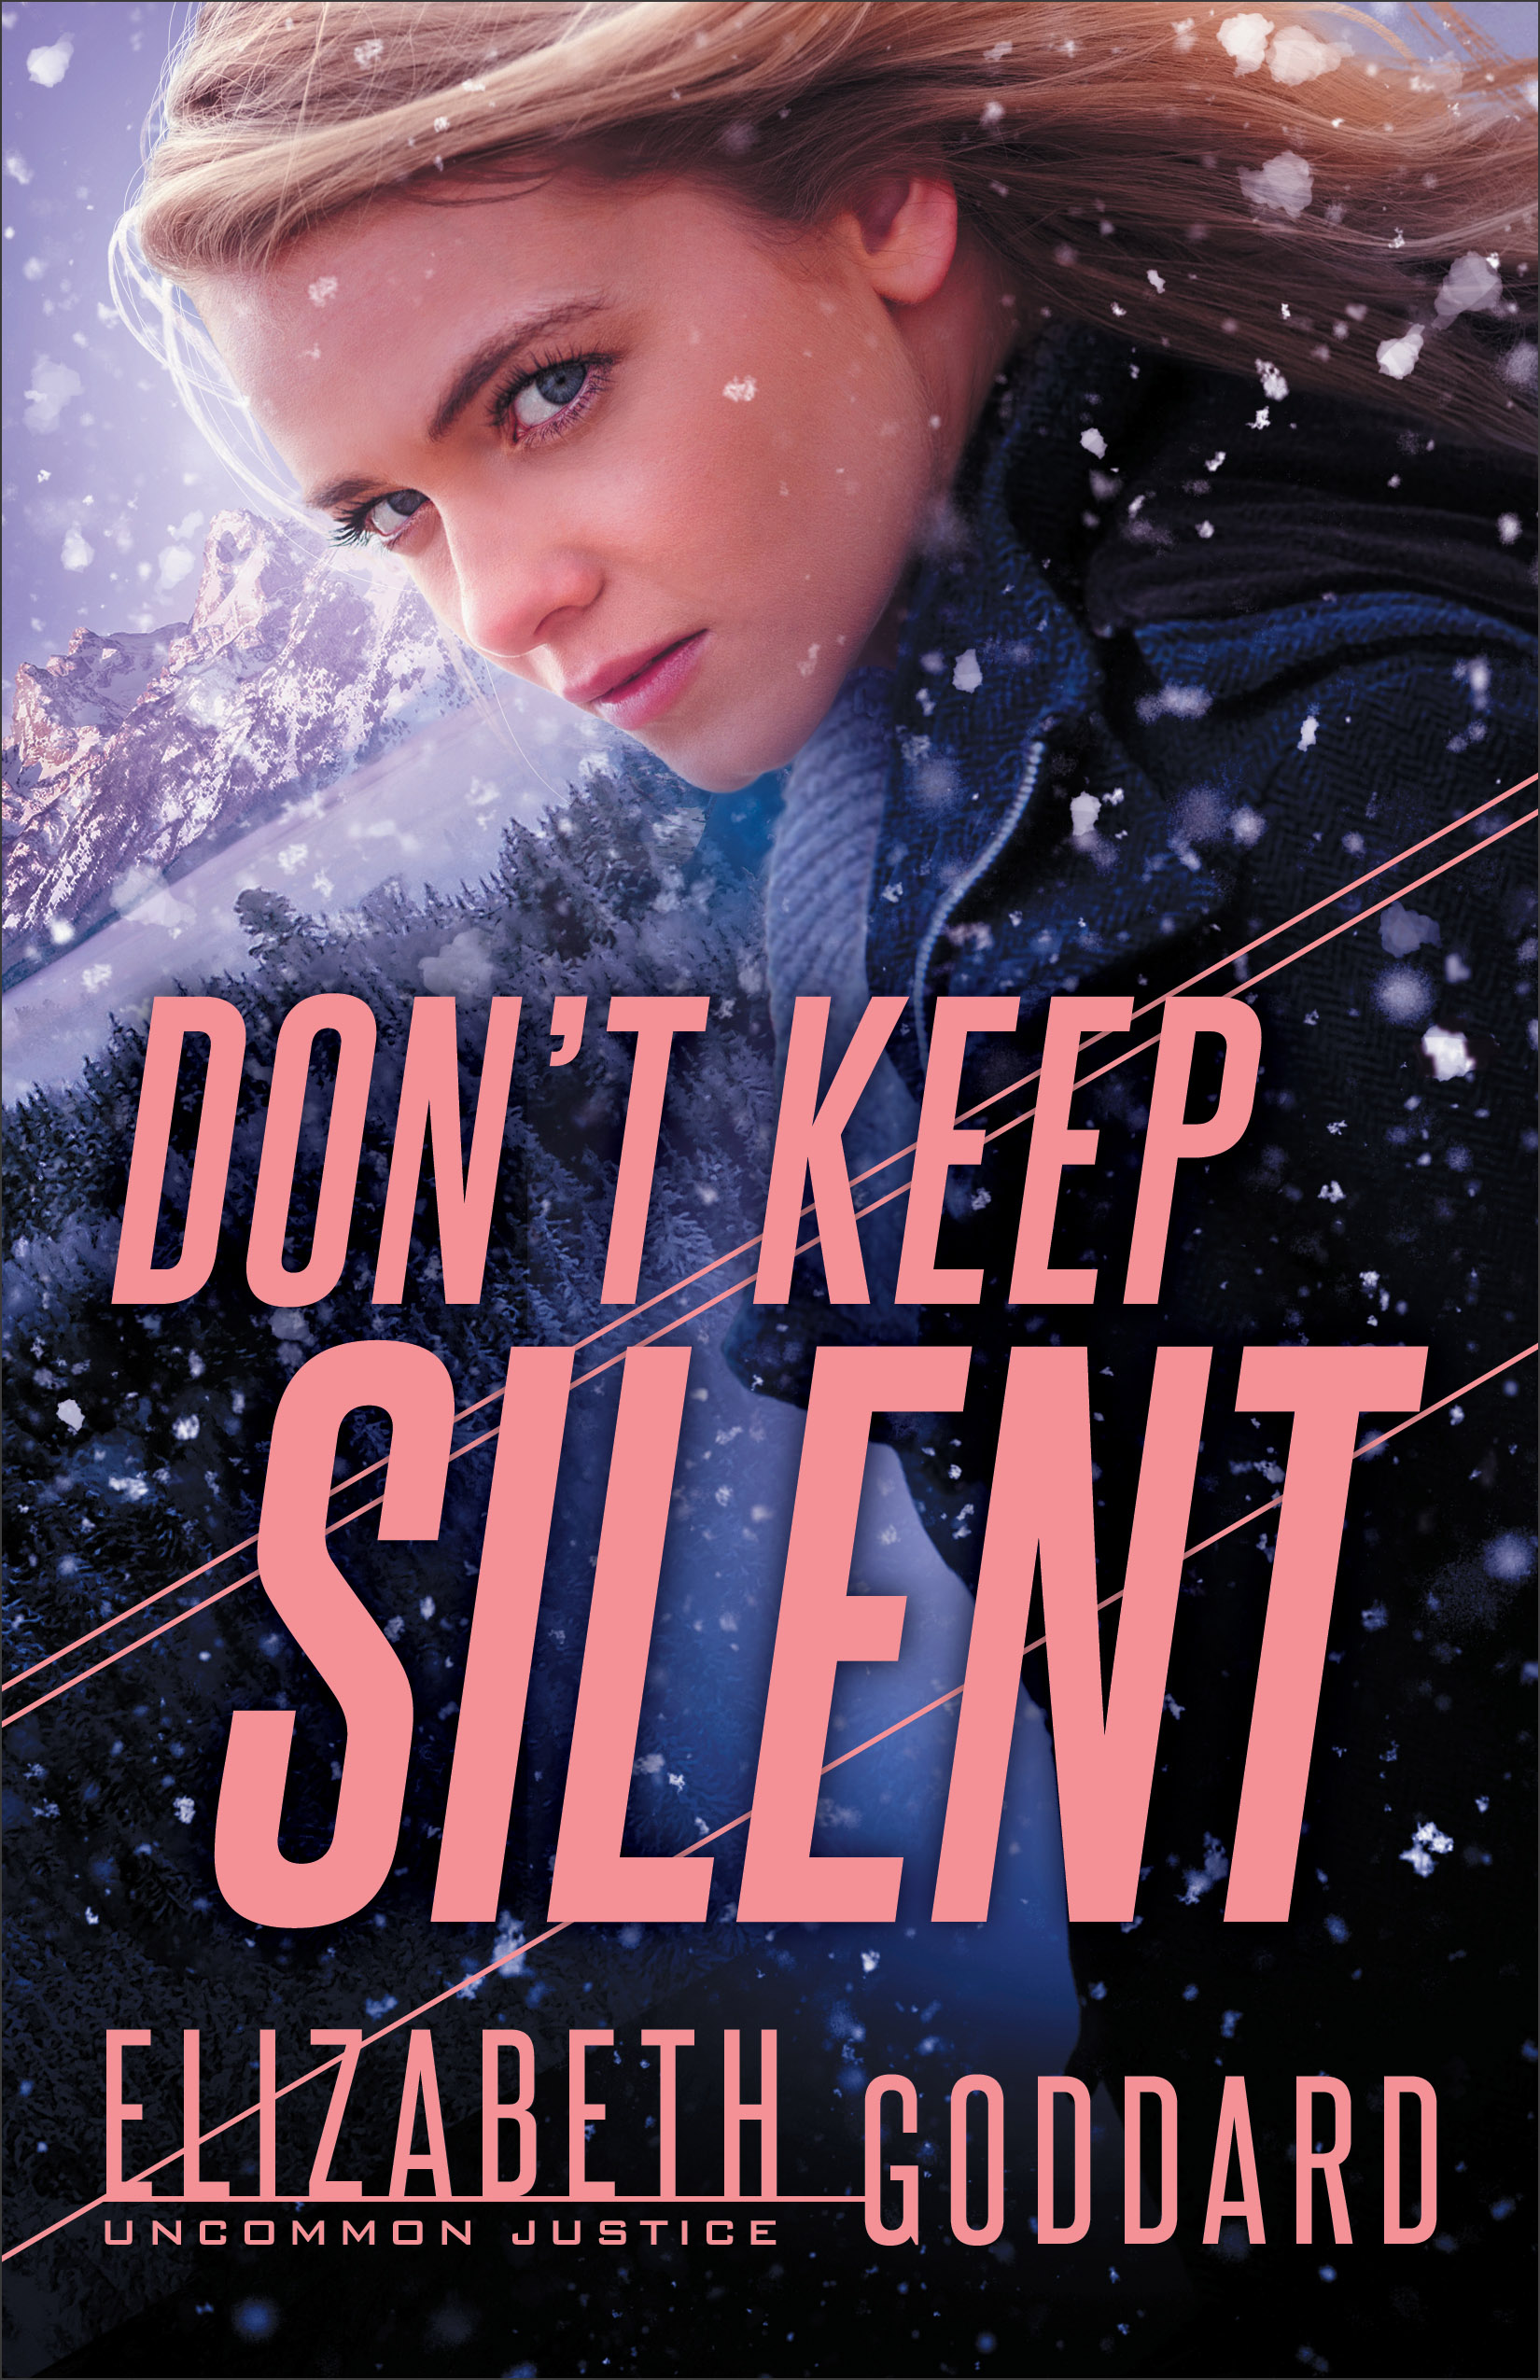 Book review of Don't Keep Silent by Elizabeth Goddard (Revell) by papertapepins